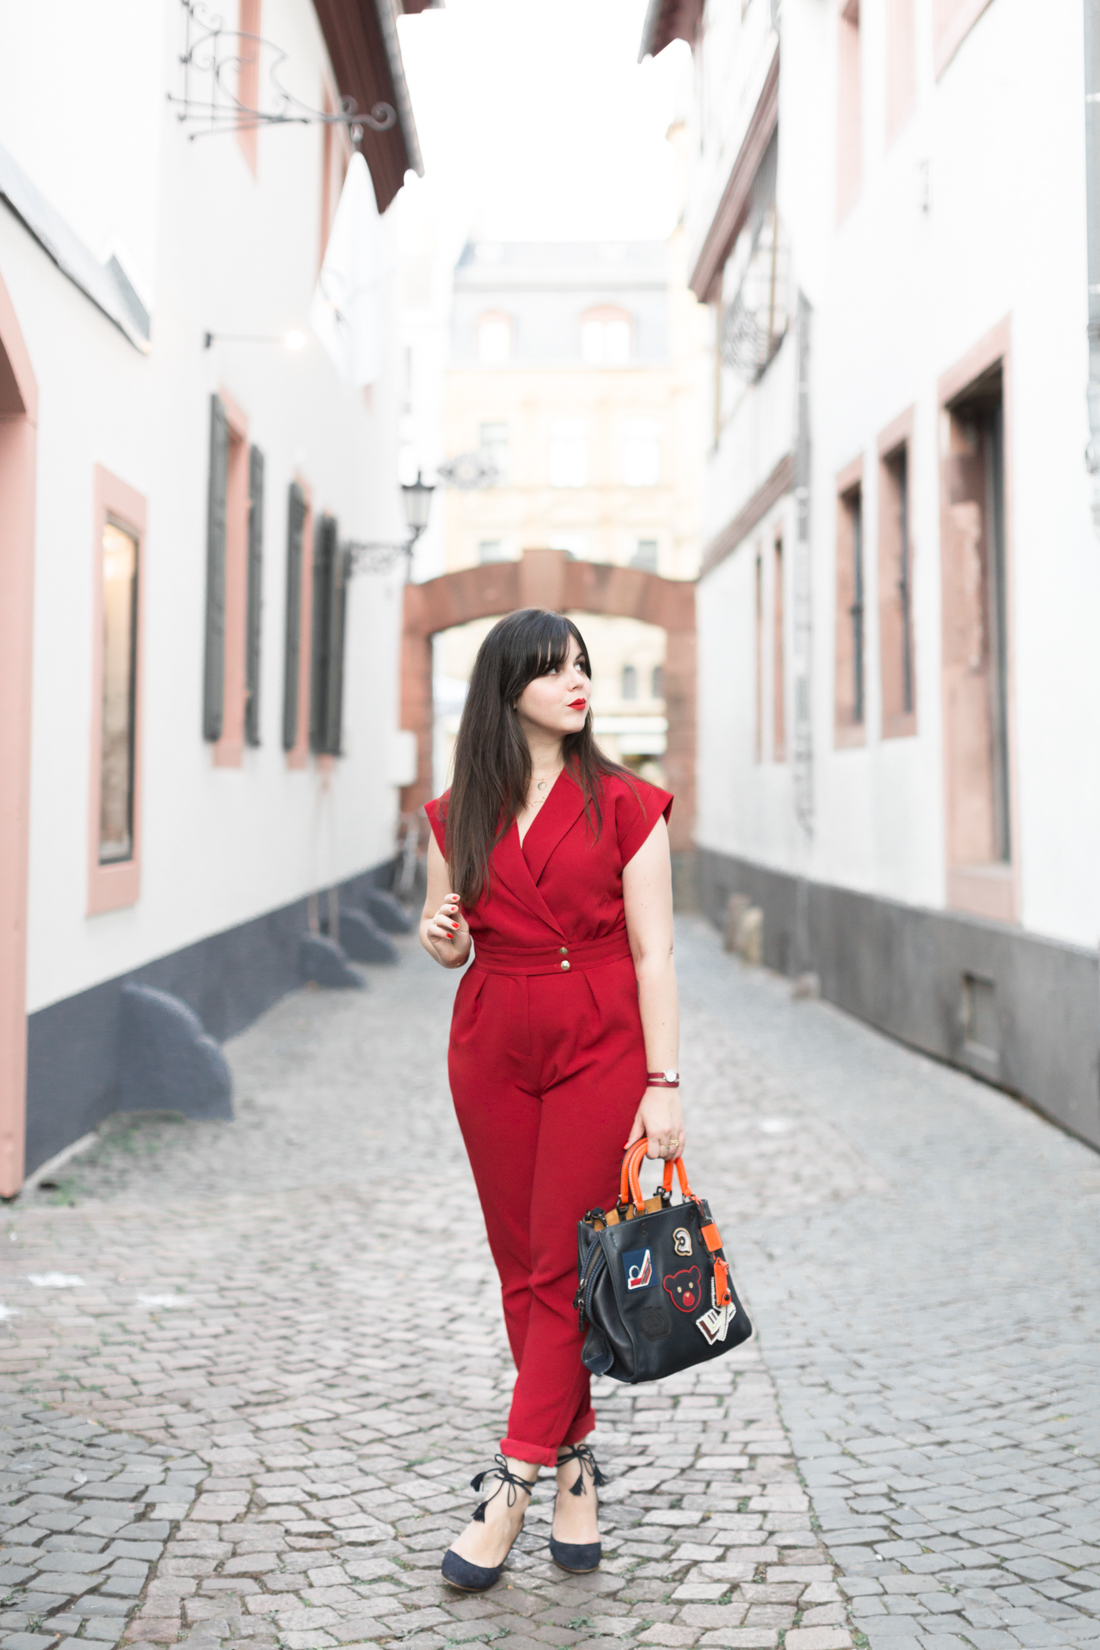 varsity-rogue-bag-coach-new-york-red-jumpsuit-valentina-sezane-marine-copyright-pauline-paulinefashionblog-com-3